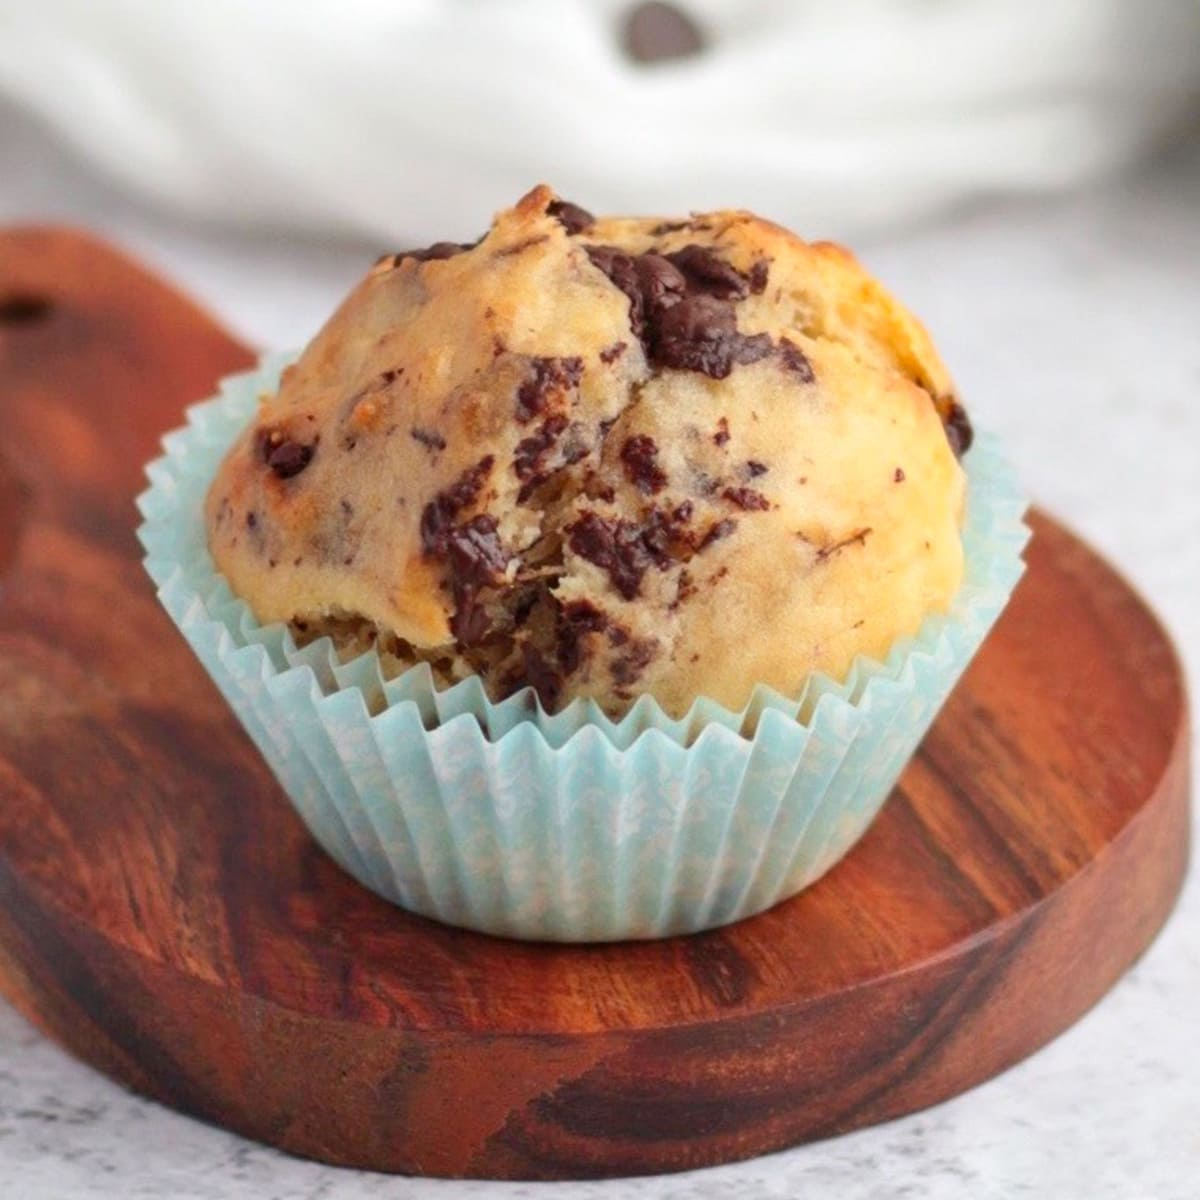 One Chocolate Chip Banana Muffin on a wooden board